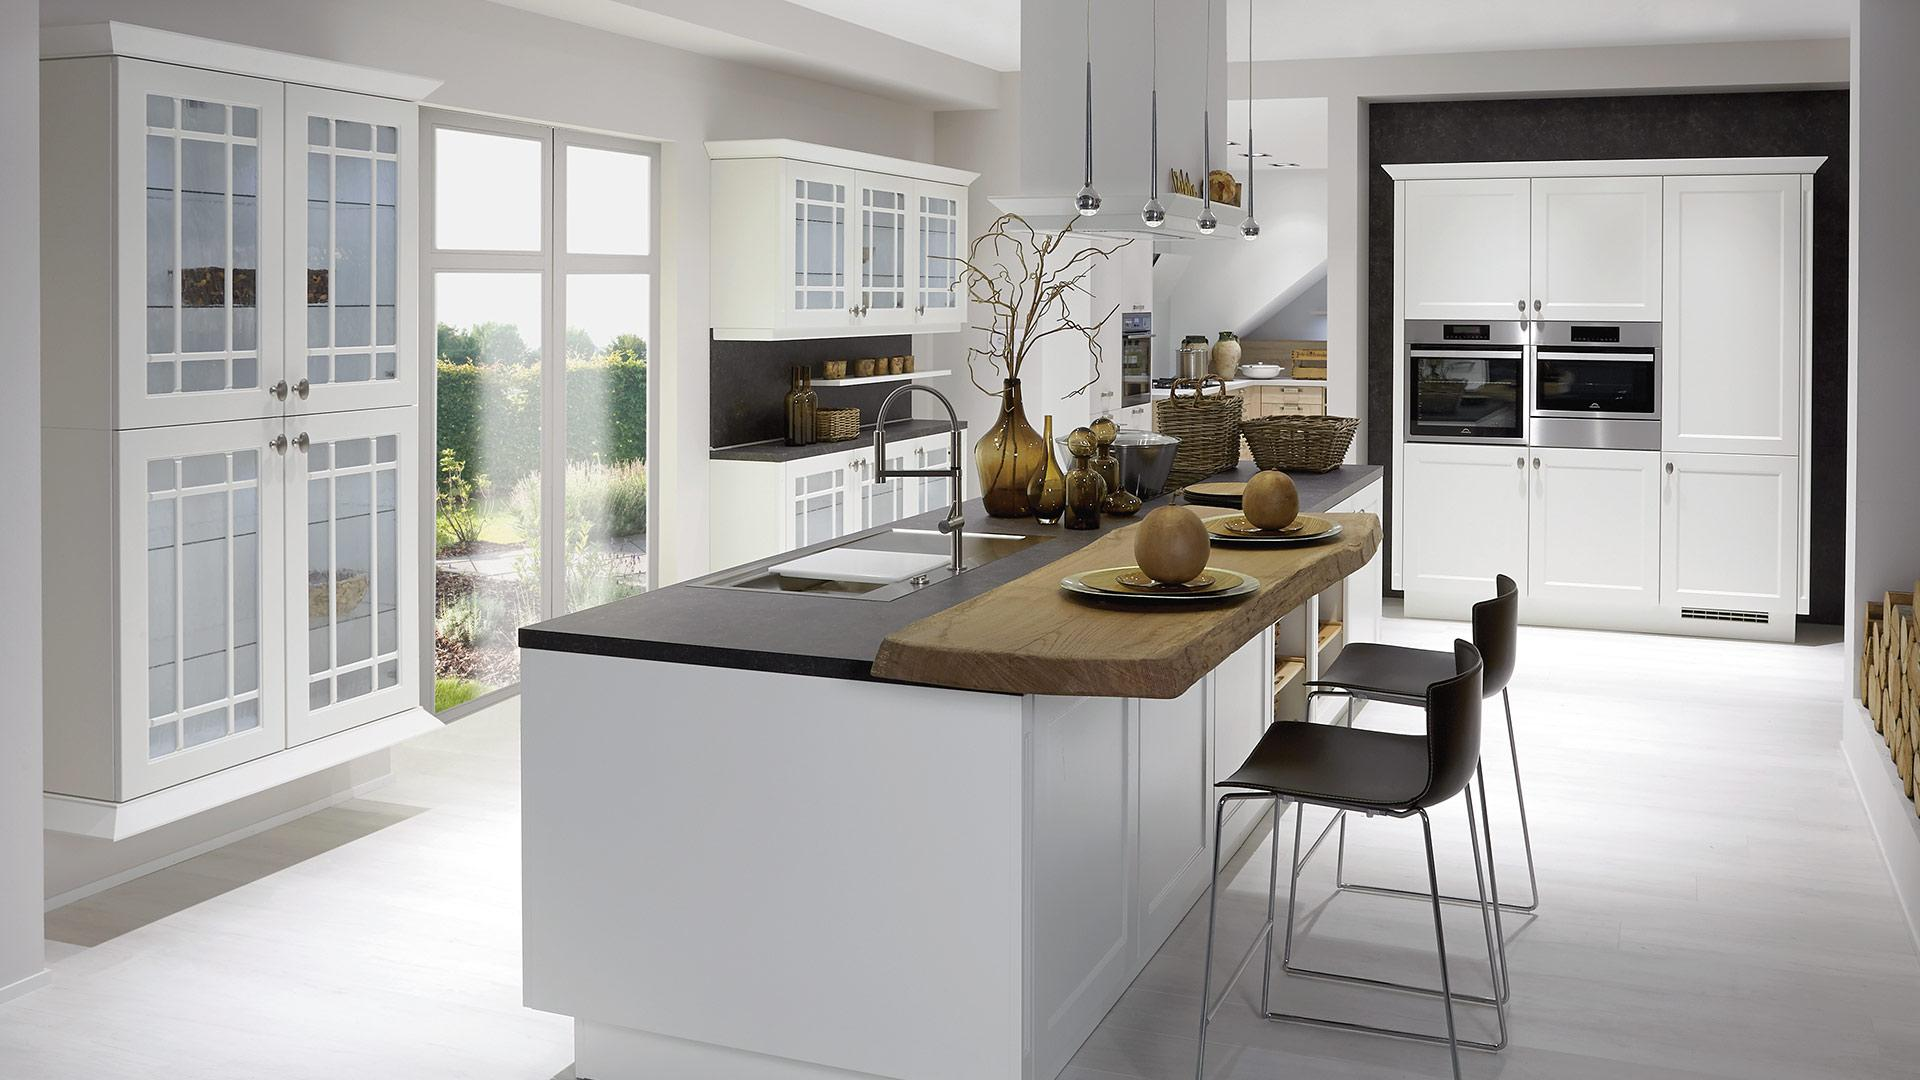 Nolte kchen katalog modern kitchens stylish innovative - Nolte schlafzimmer katalog ...